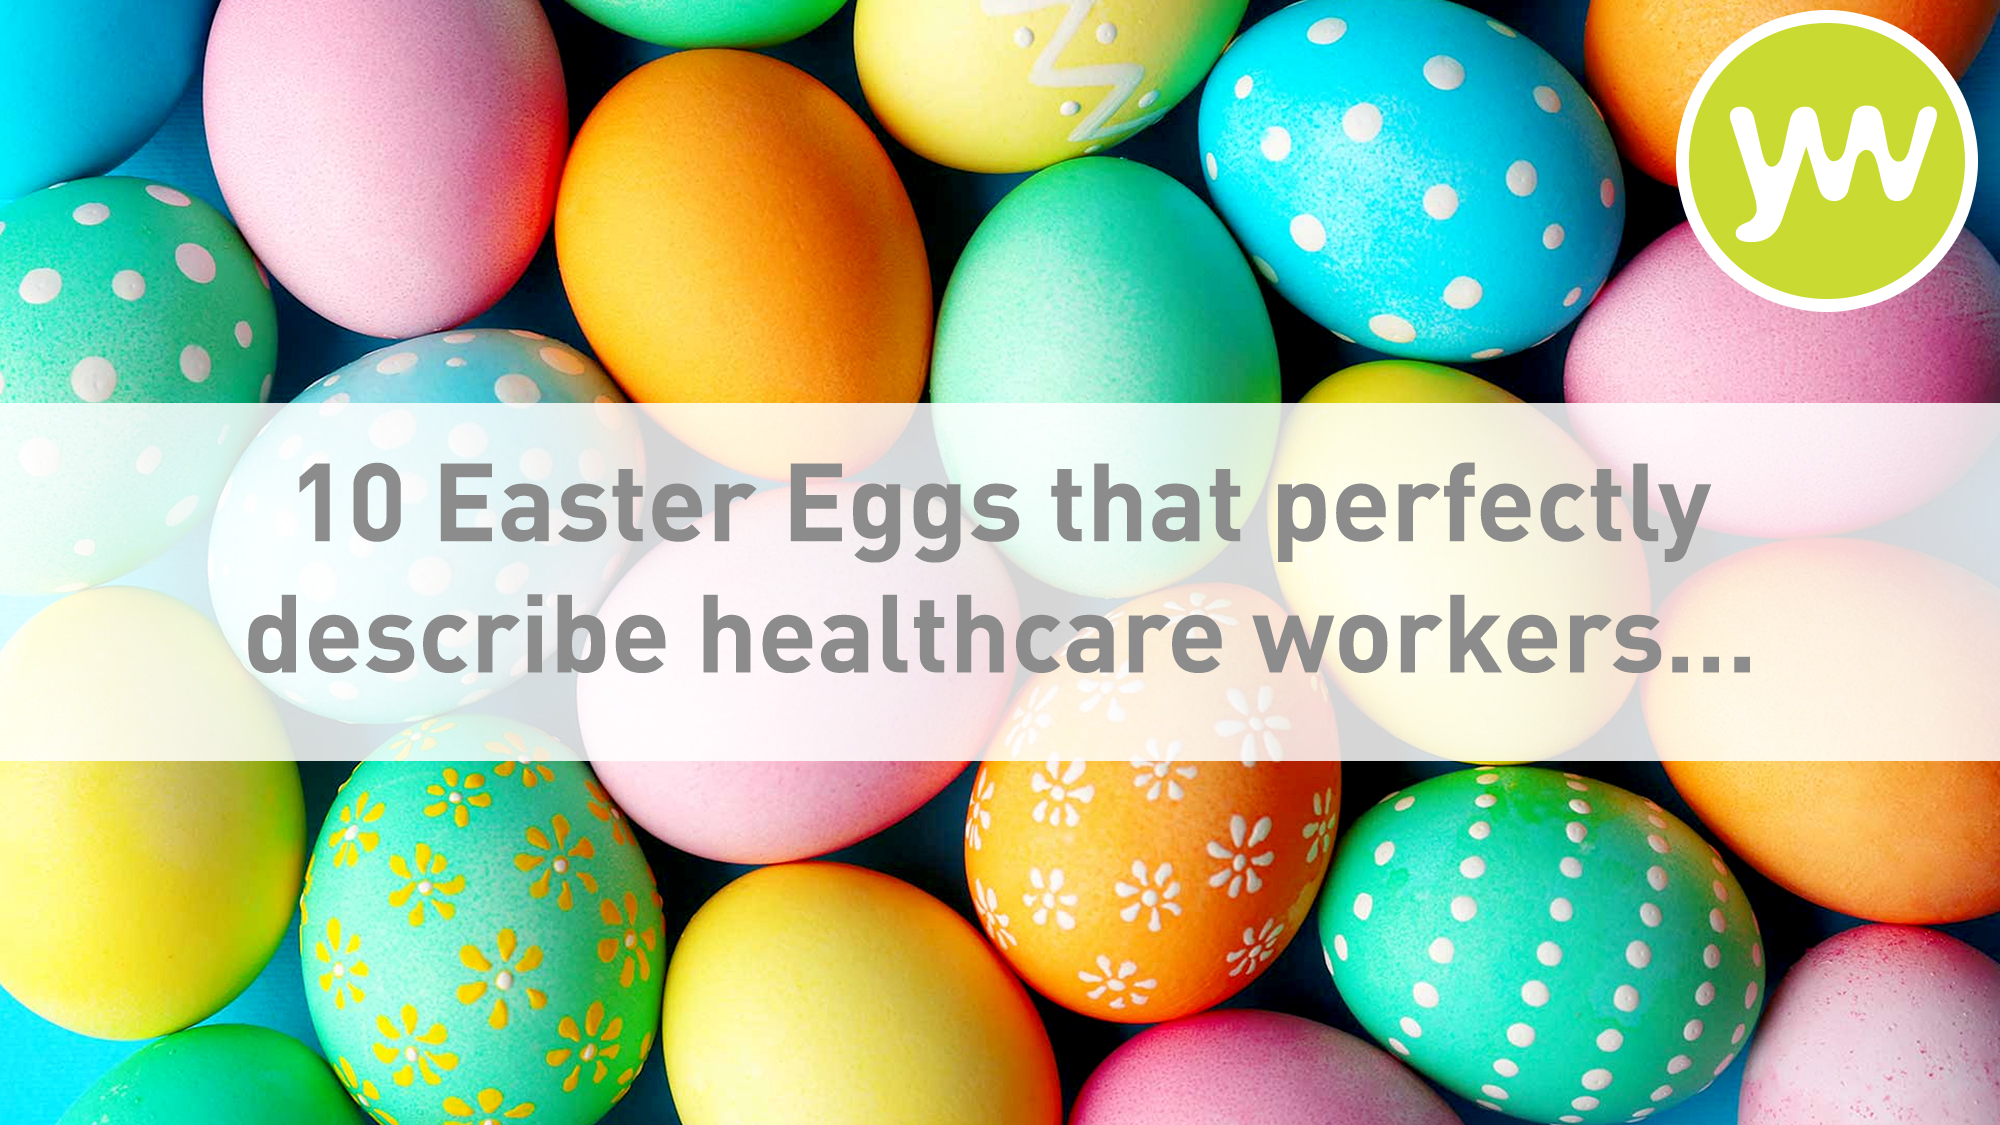 These 10 Easter eggs perfectly describe healthcare workers!